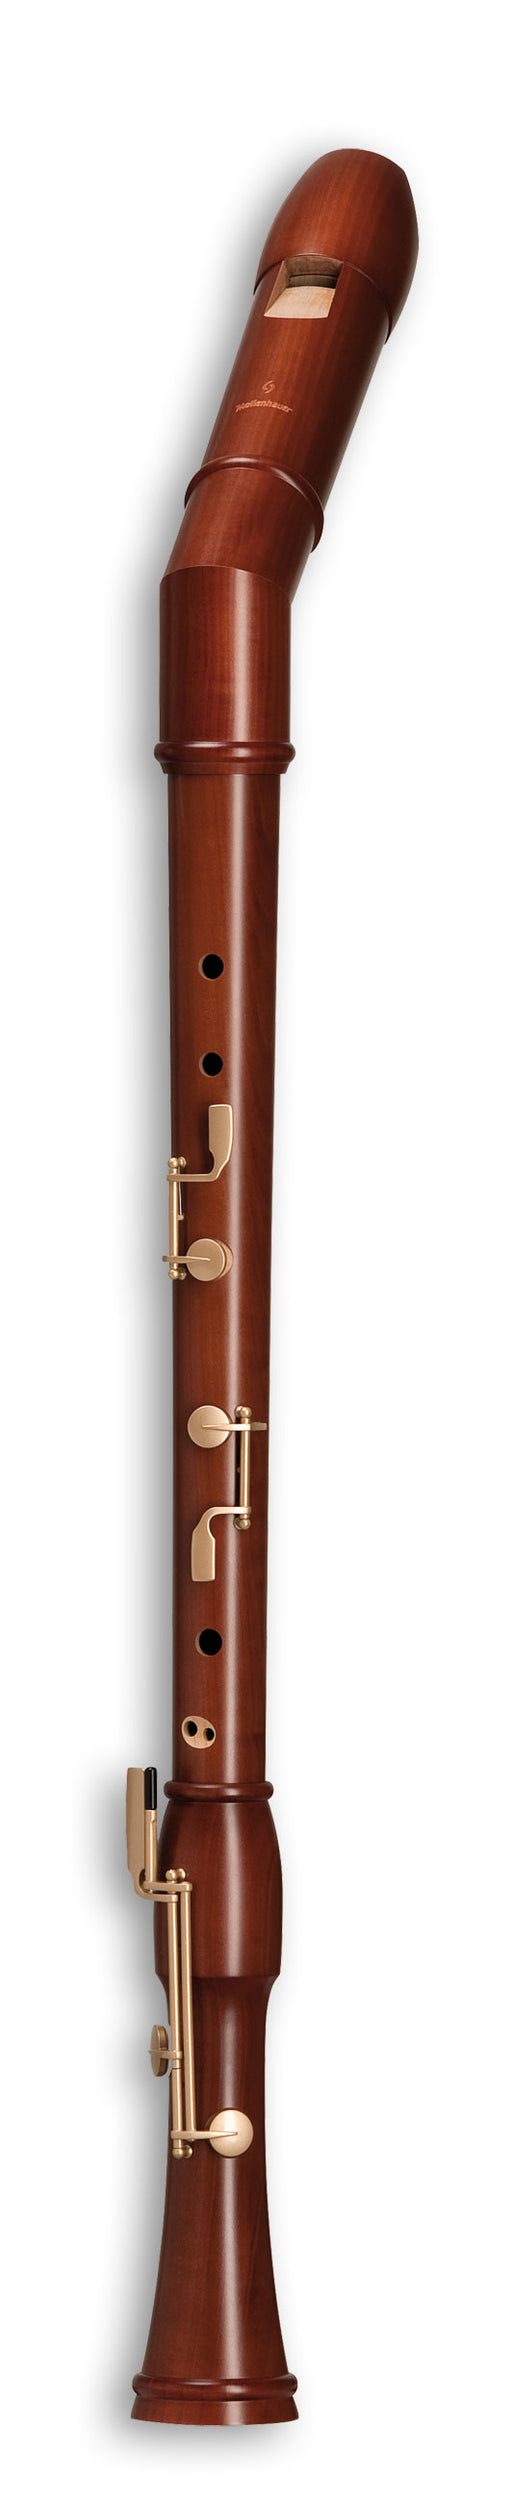 Mollenhauer Canta Knick Bass Recorder in Stained Pearwood